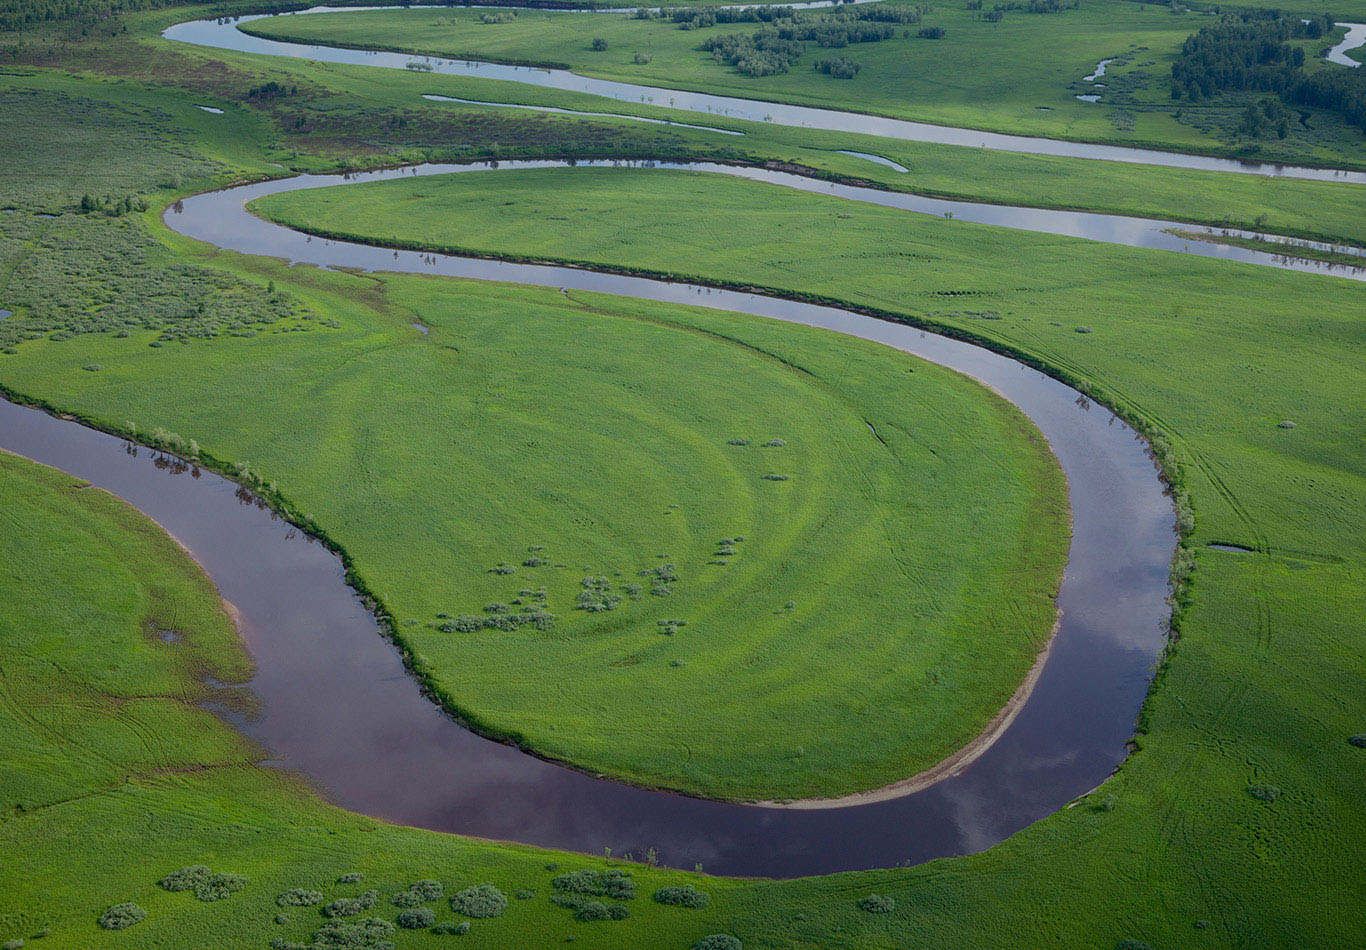 A meandering river in a green field